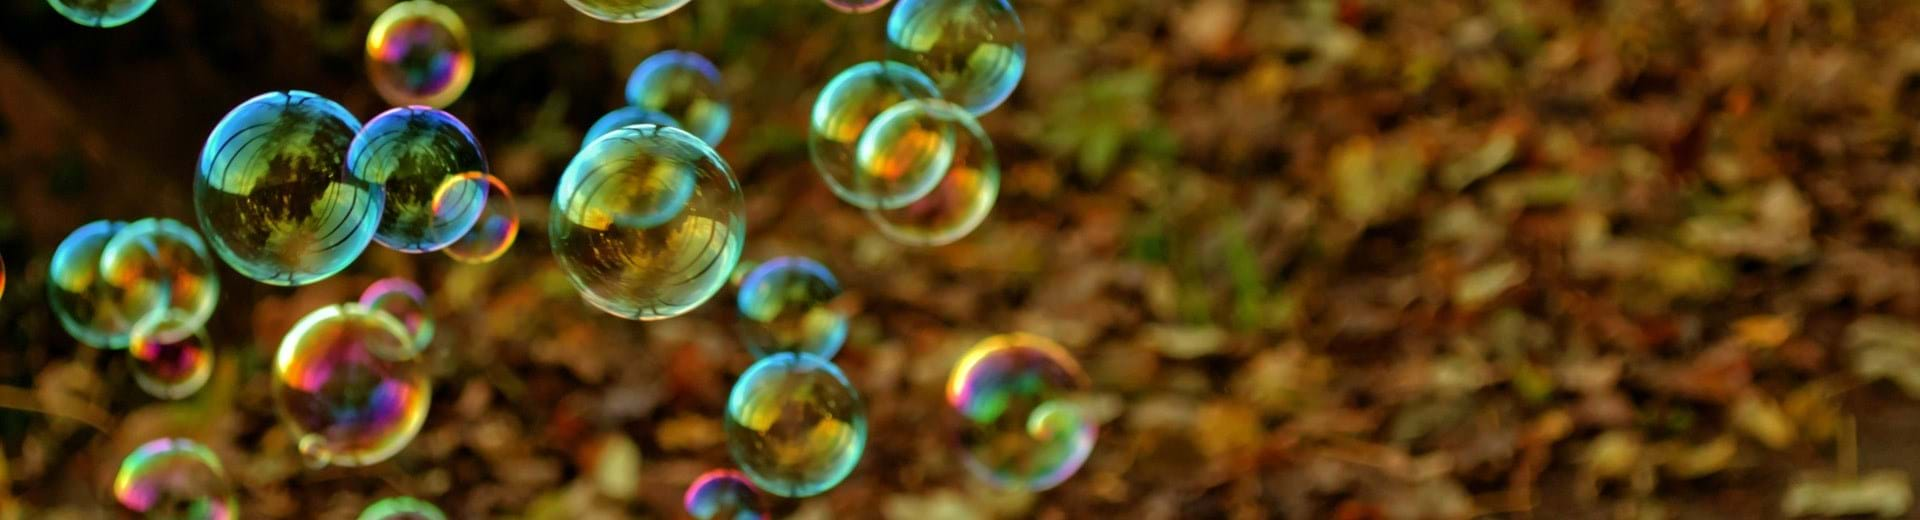 Lots of soap bubbles, and the ground is covered in autumn leaves